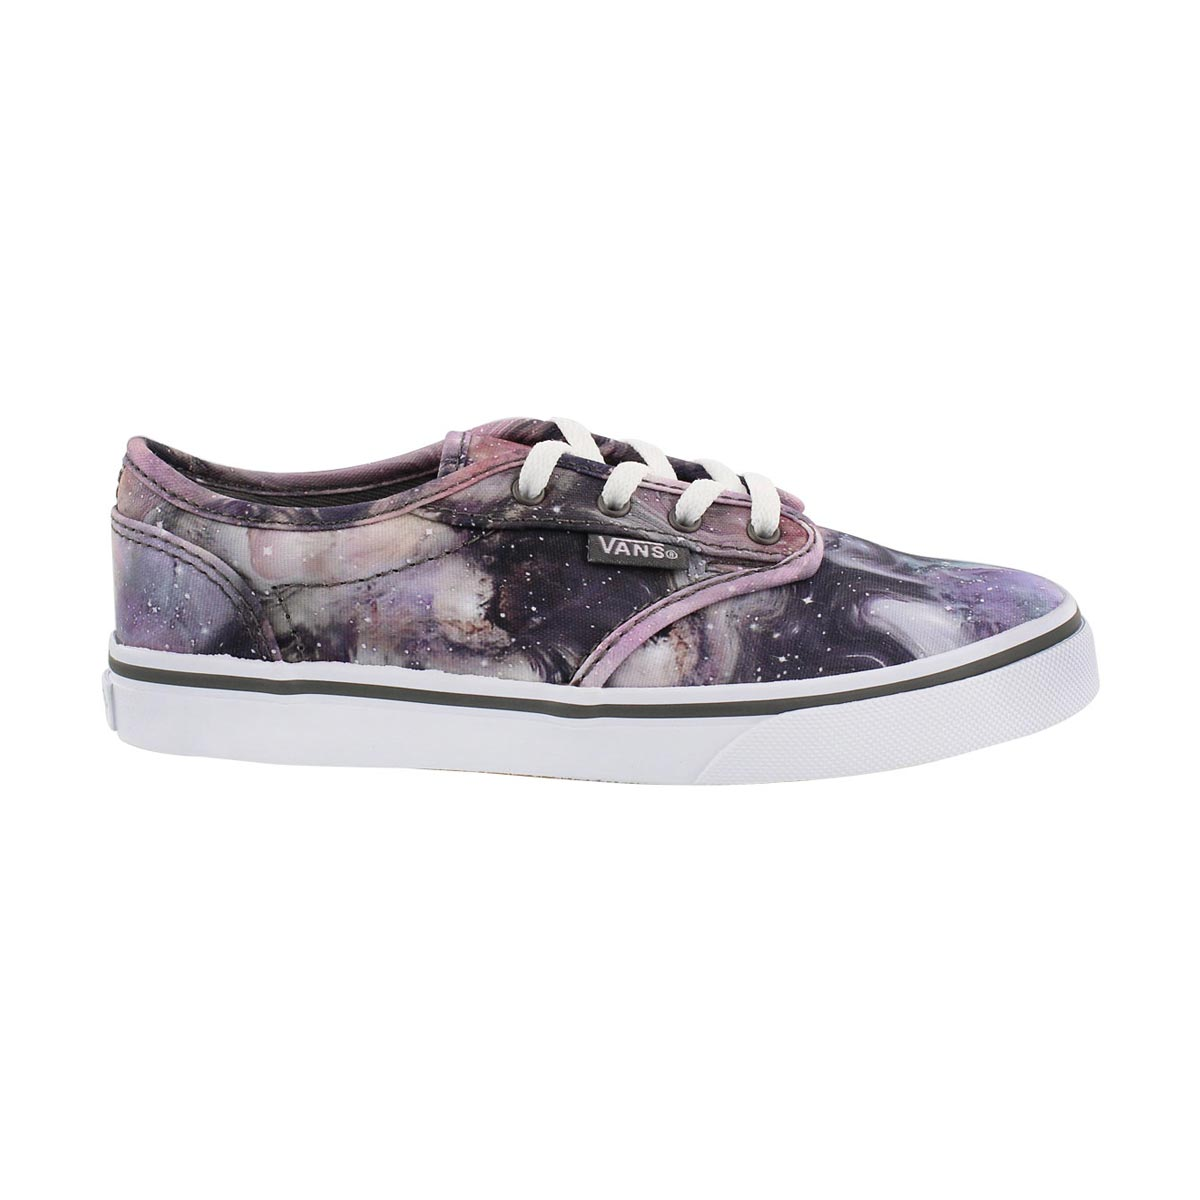 Espadrille Atwood Low, galaxie, filles